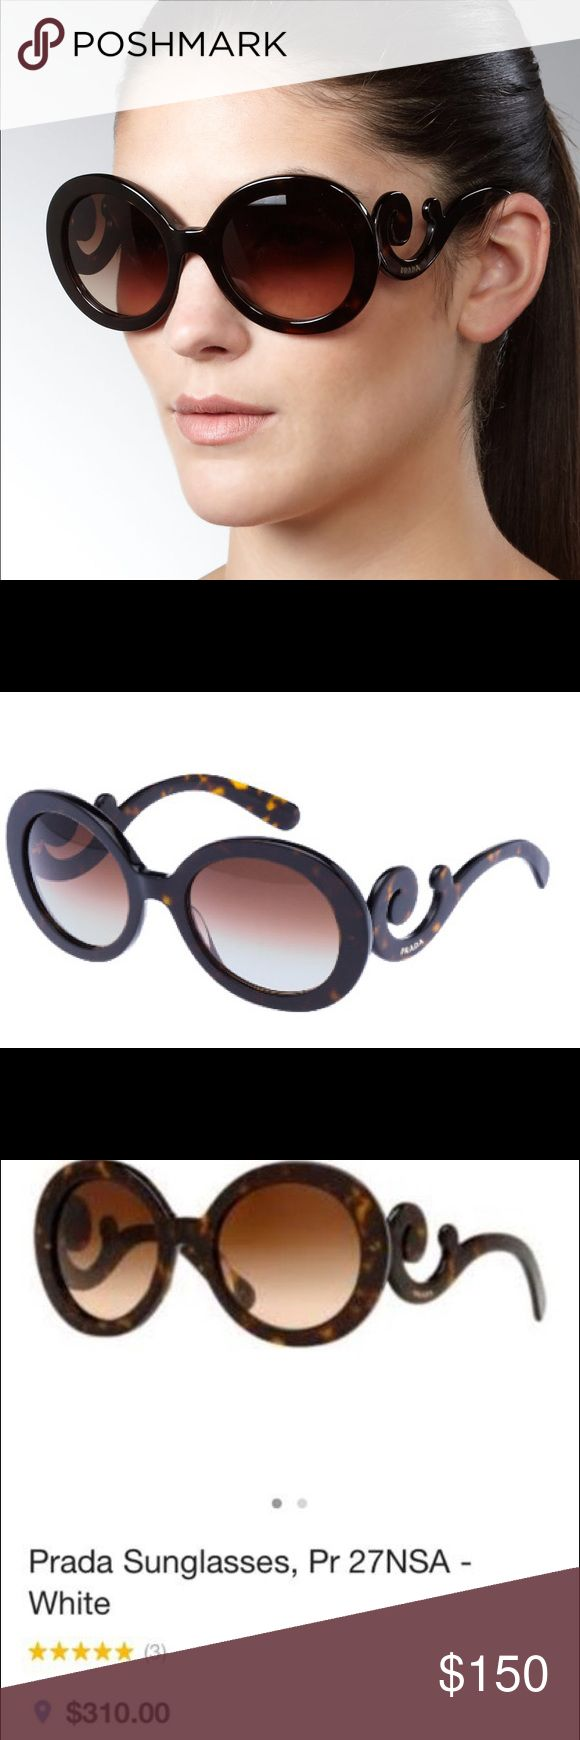 PRADA Baroque sunglasses - tortoise color Super cute and stylish! In perfect condition - paid $400+ at Nordstrom for these, currently selling for $310 at Macy's! No flaws, no scratches, come with care booklet, new Prada cloth cleaner and Prada box, not sunglasses case. Prada Accessories Sunglasses